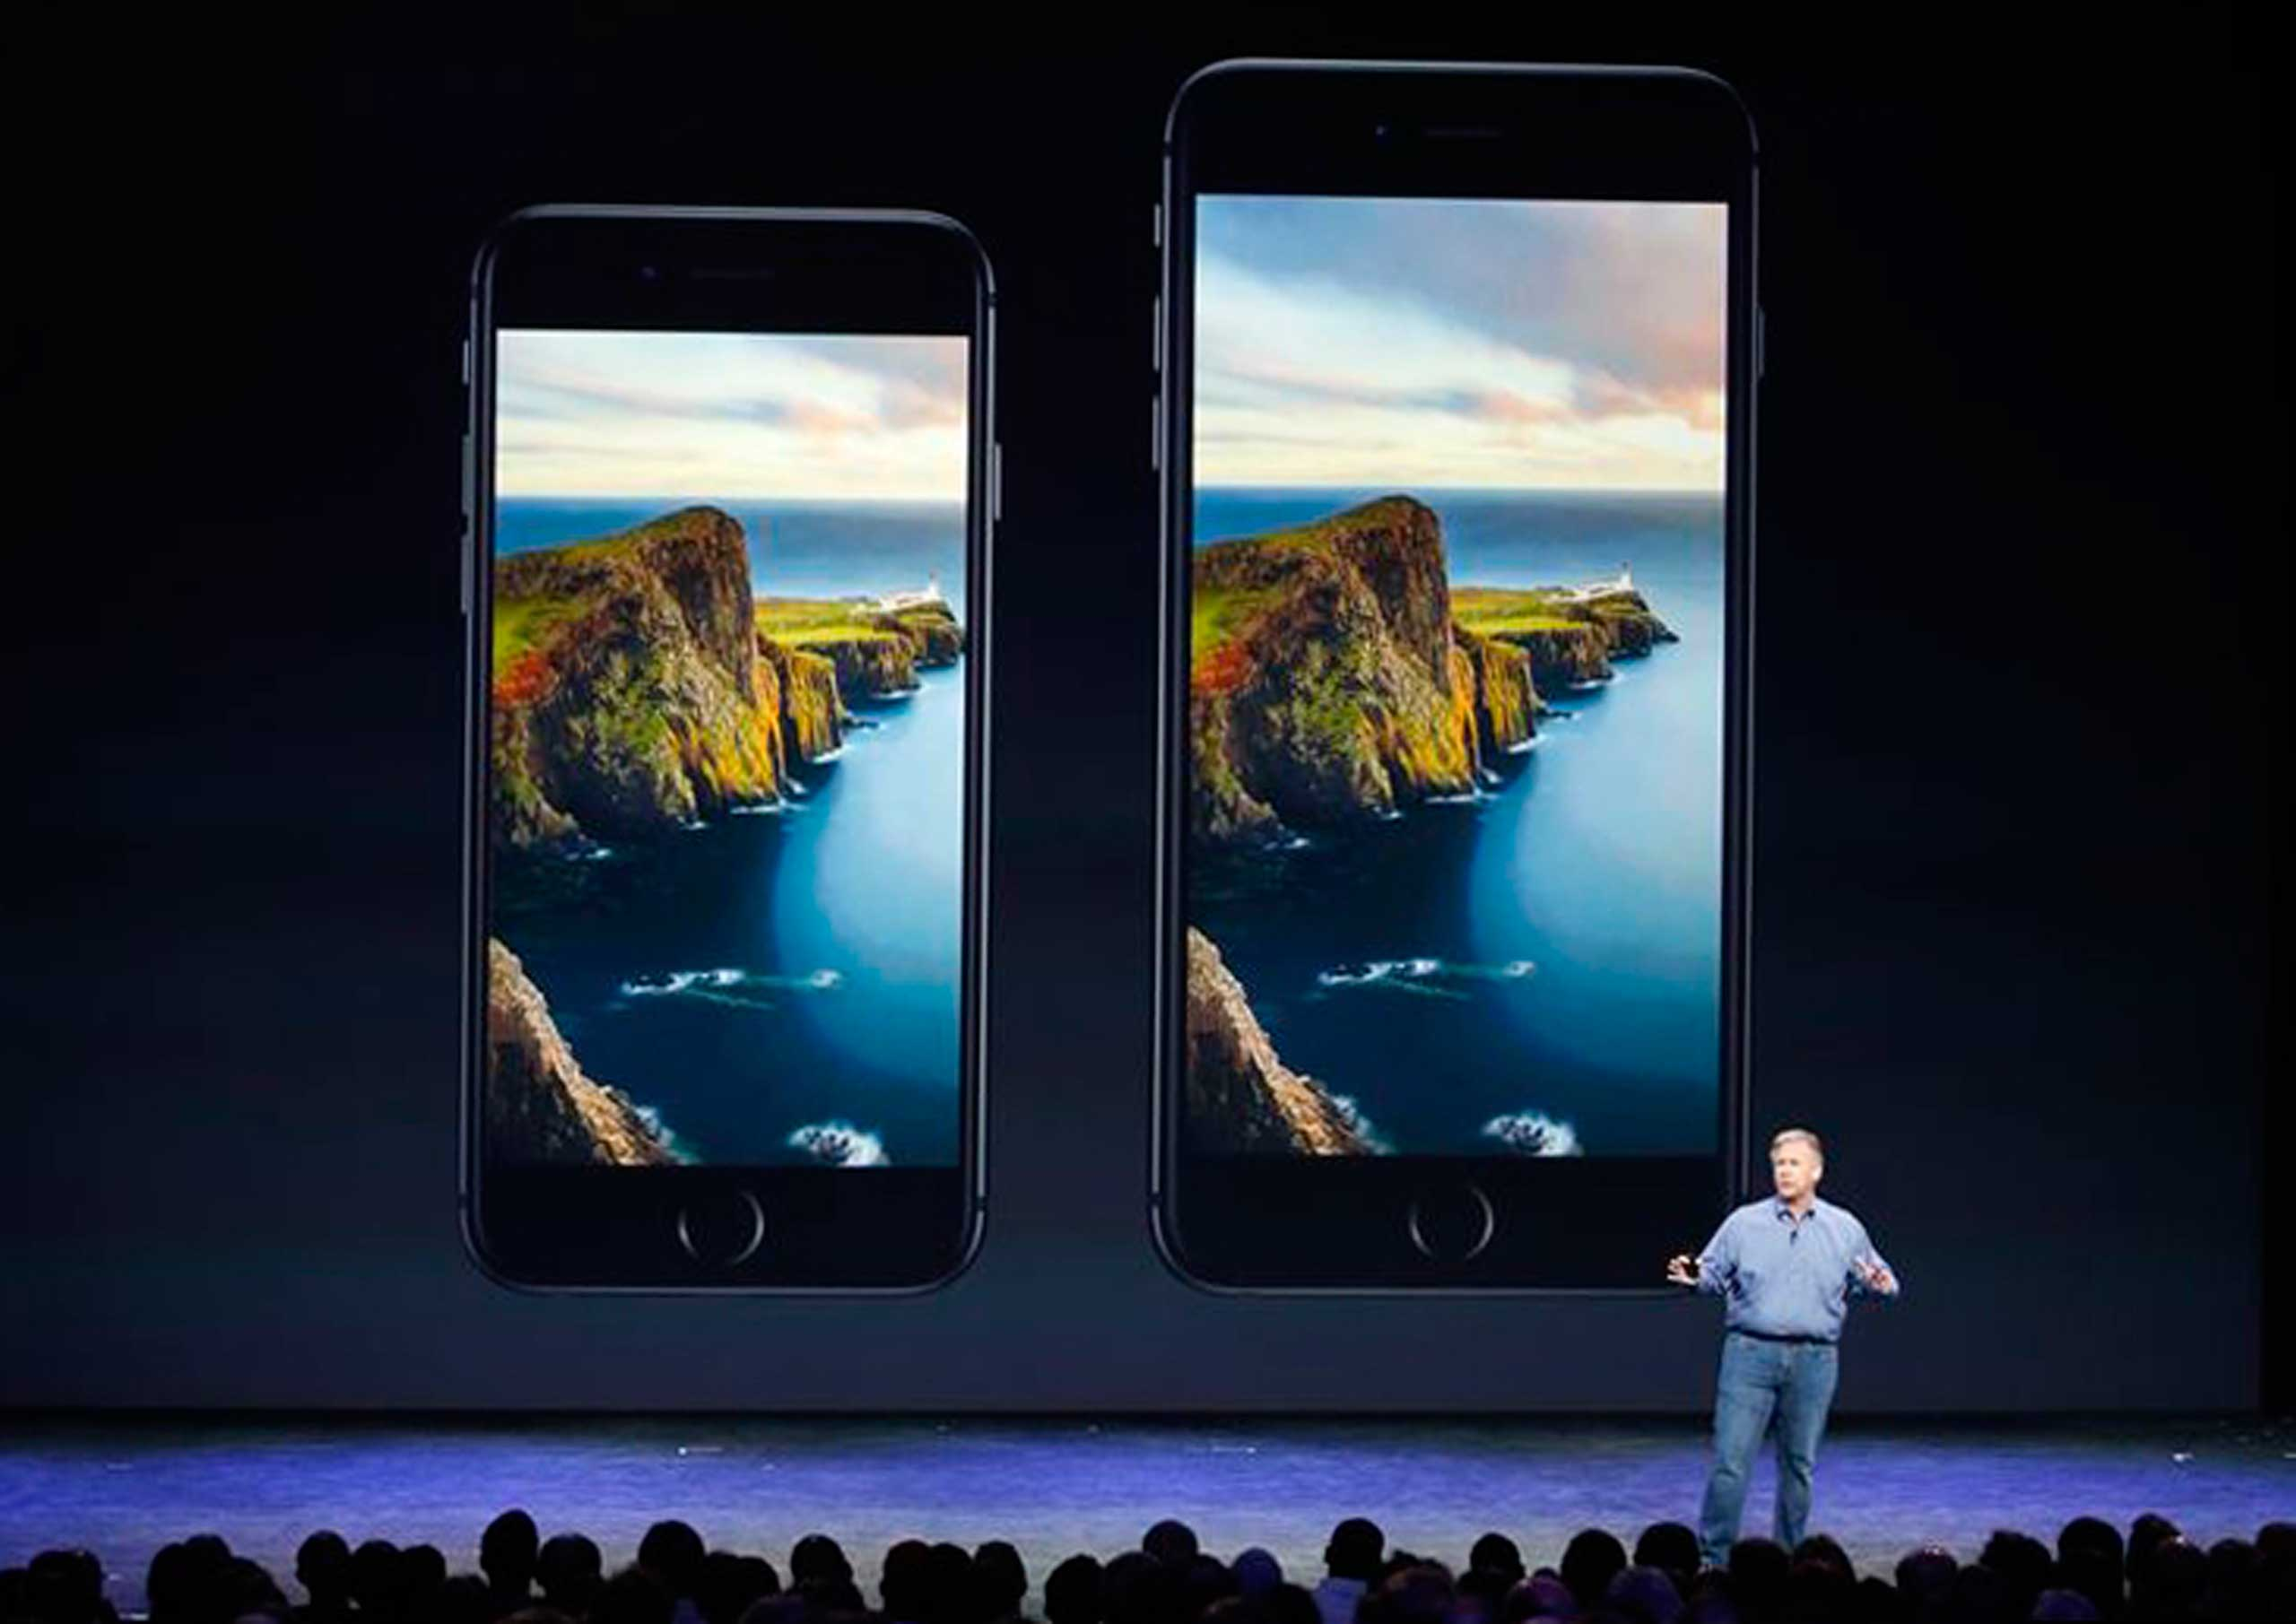 Phil Schiller, Senior Vice President at Apple, Inc. speaks about the iPhone 6 and the iPhone 6 Plus during an Apple event at the Flint Center in Cupertino, Calif., September 9, 2014.